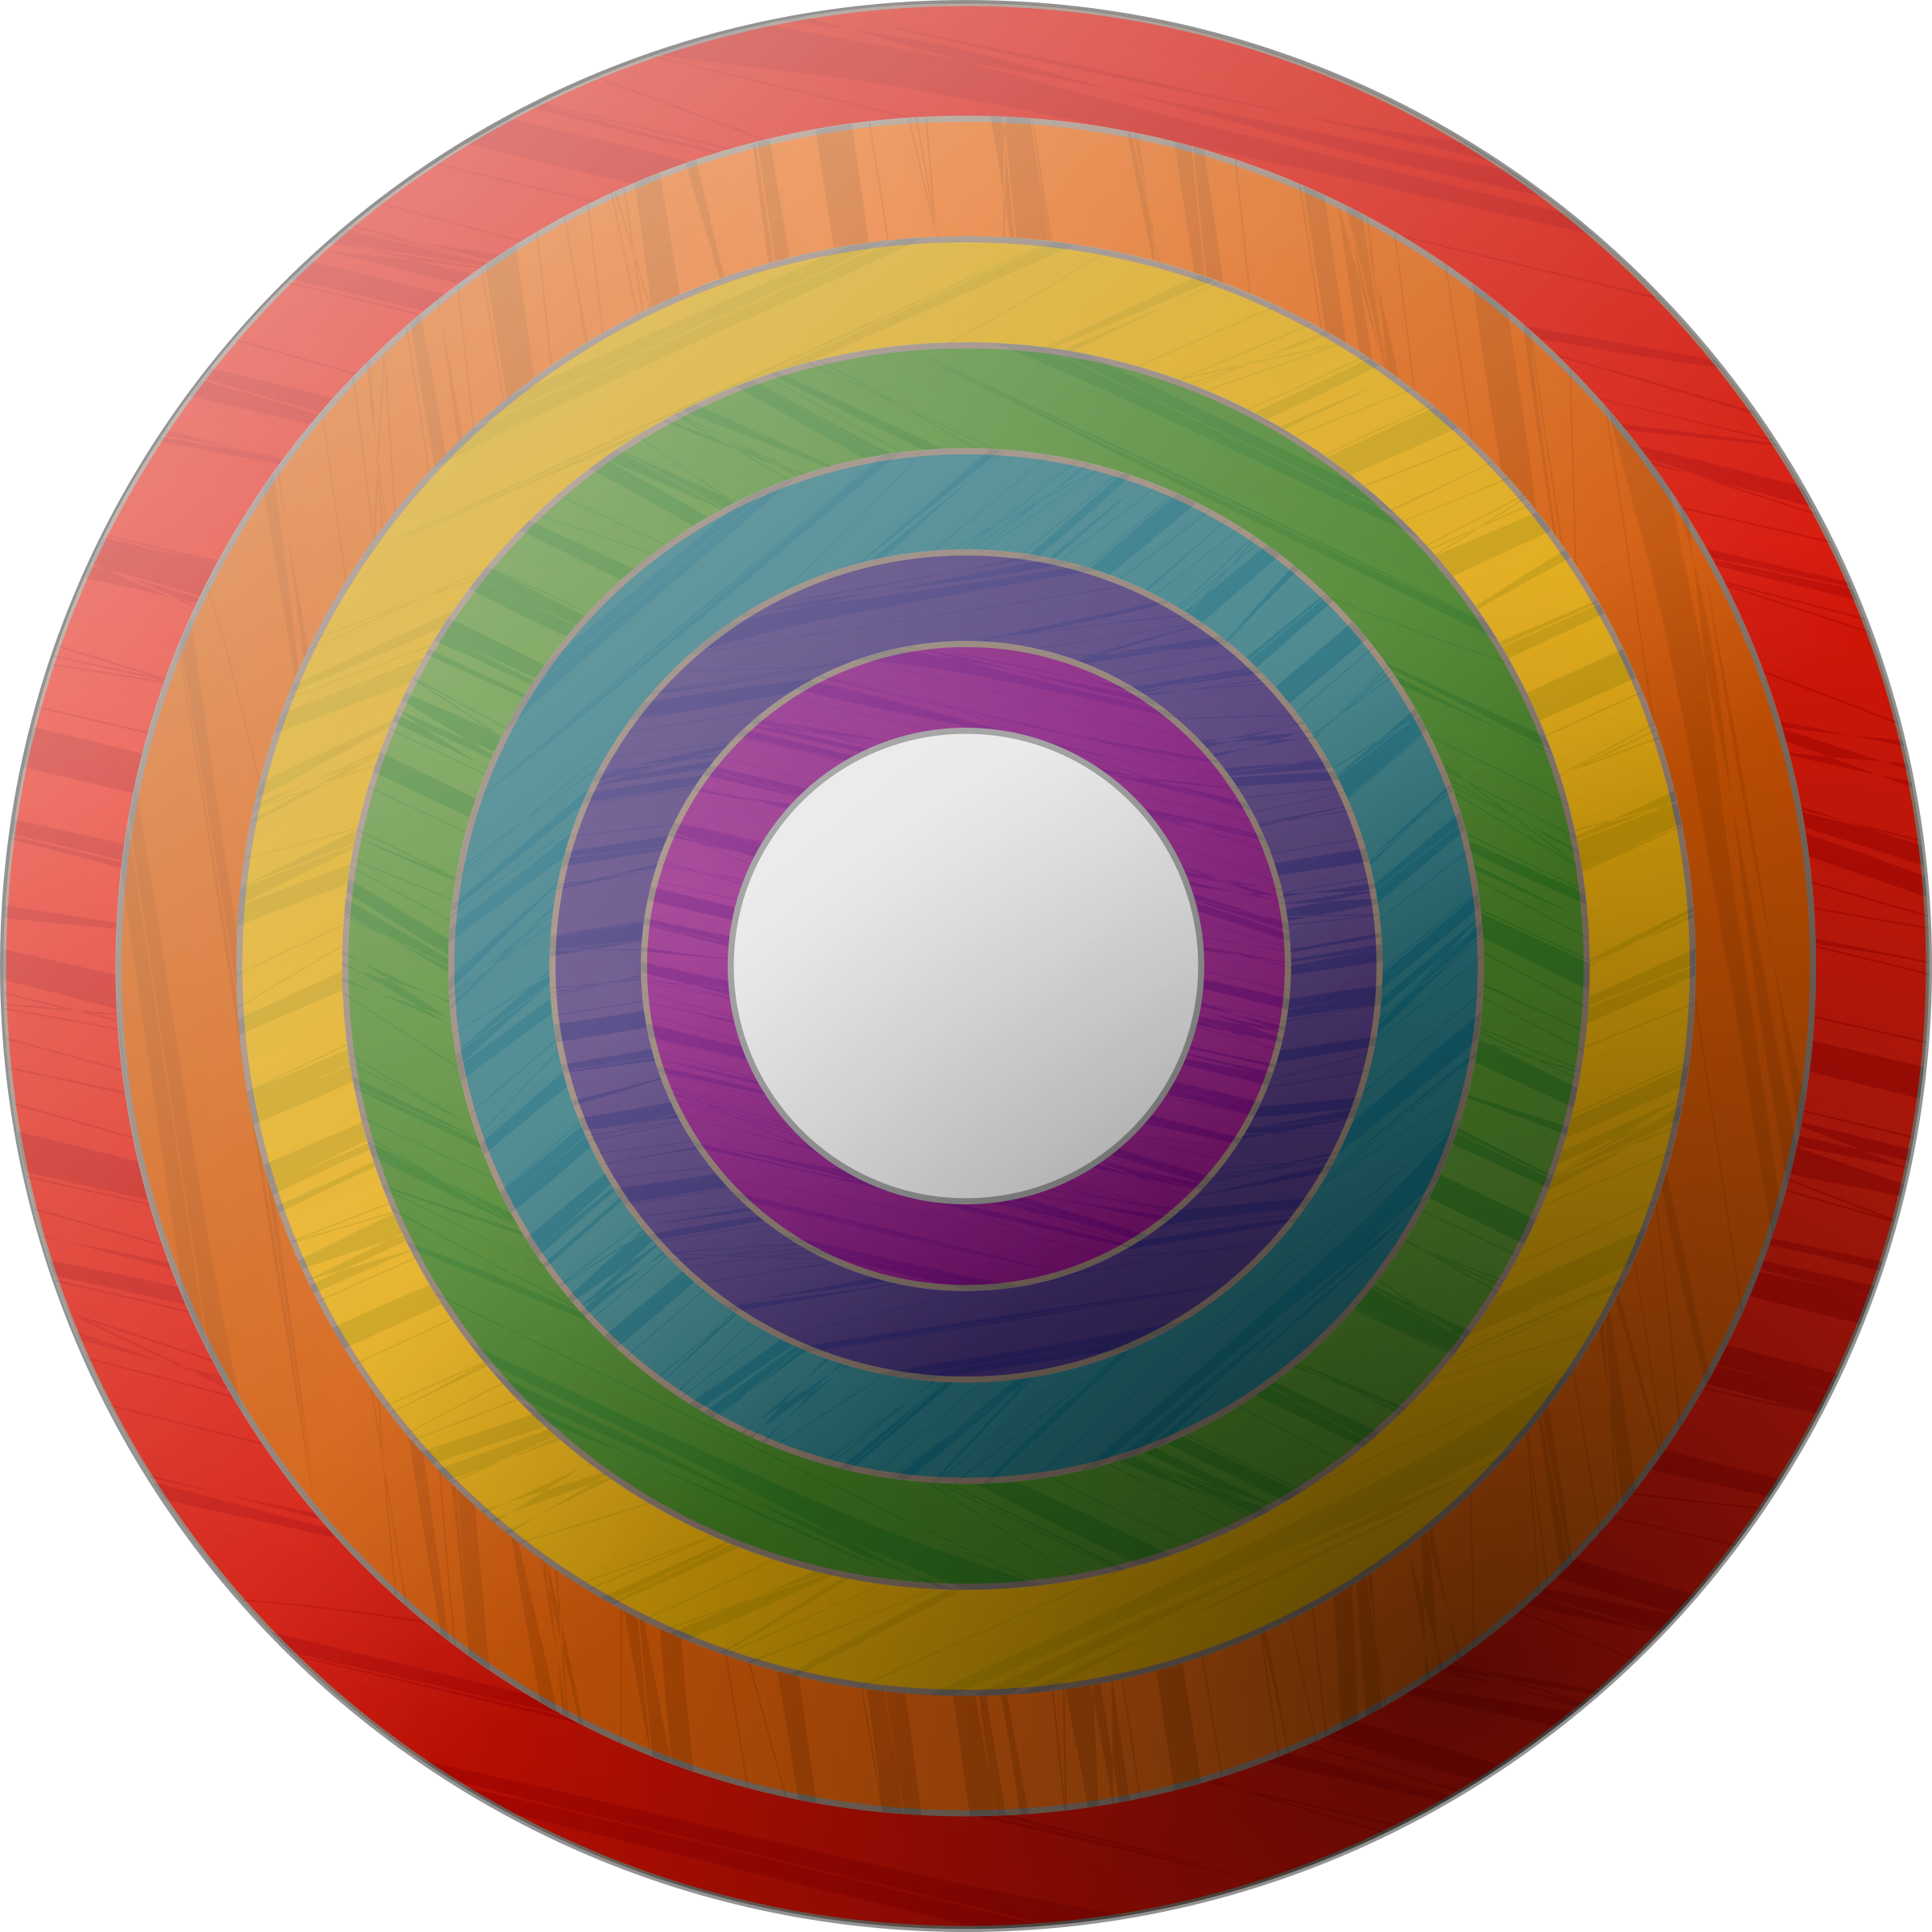 rainbowbutton by ohbjoern